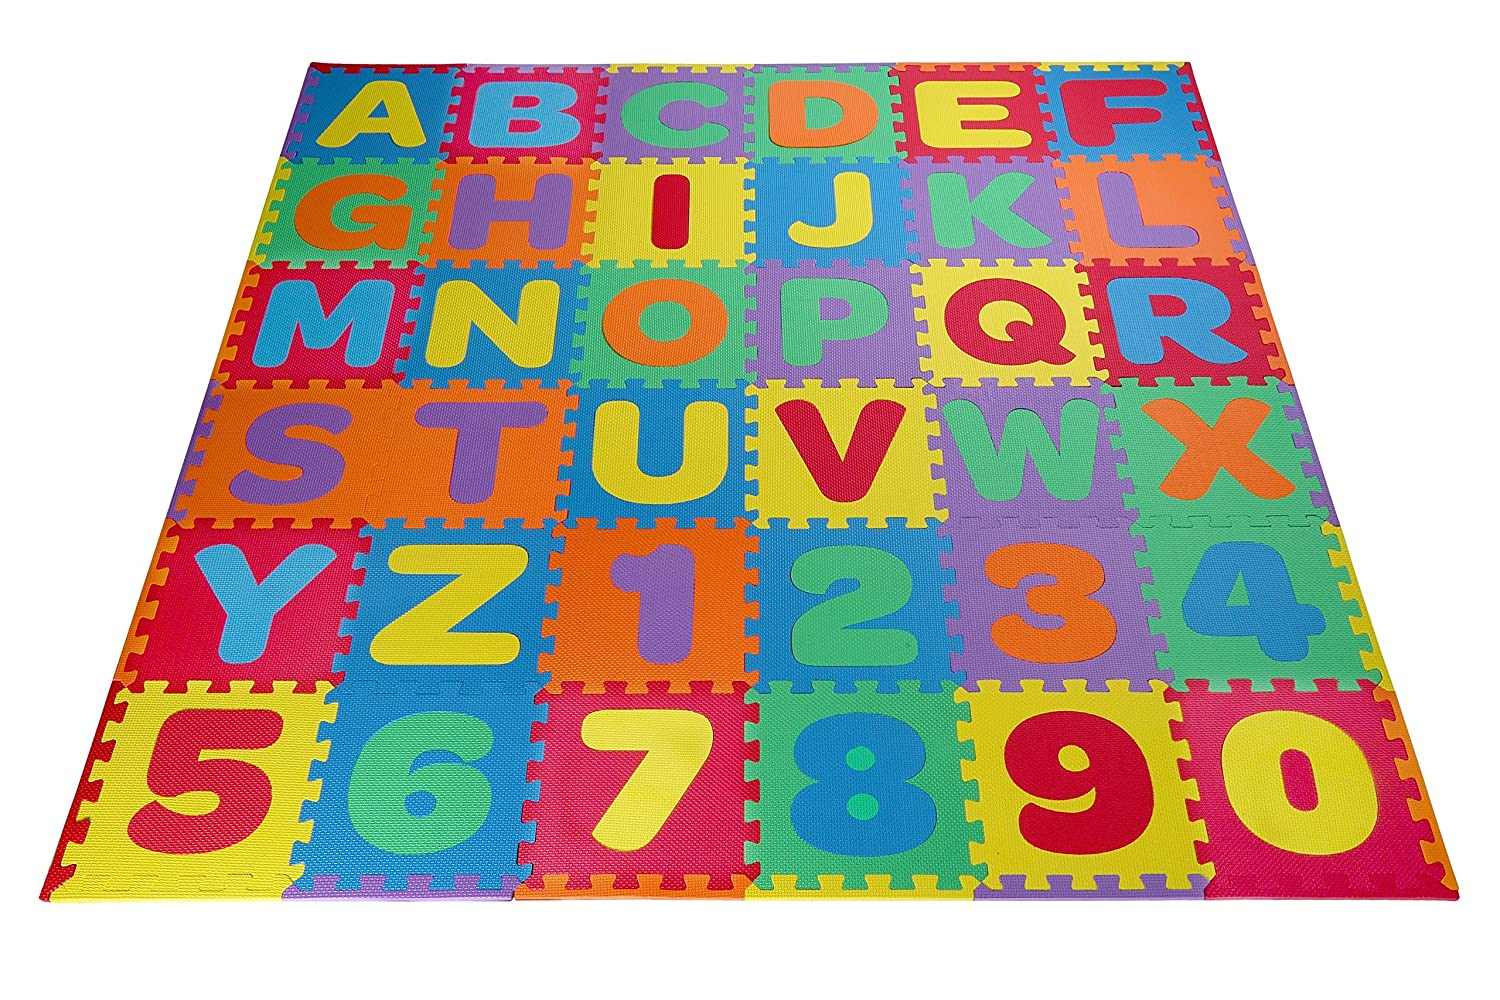 Amazon toydaloo eva kids foam play alphabet abc plus numbers amazon toydaloo eva kids foam play alphabet abc plus numbers puzzle mat plus 24 border edges includes reusable carrying bag with handle dailygadgetfo Images